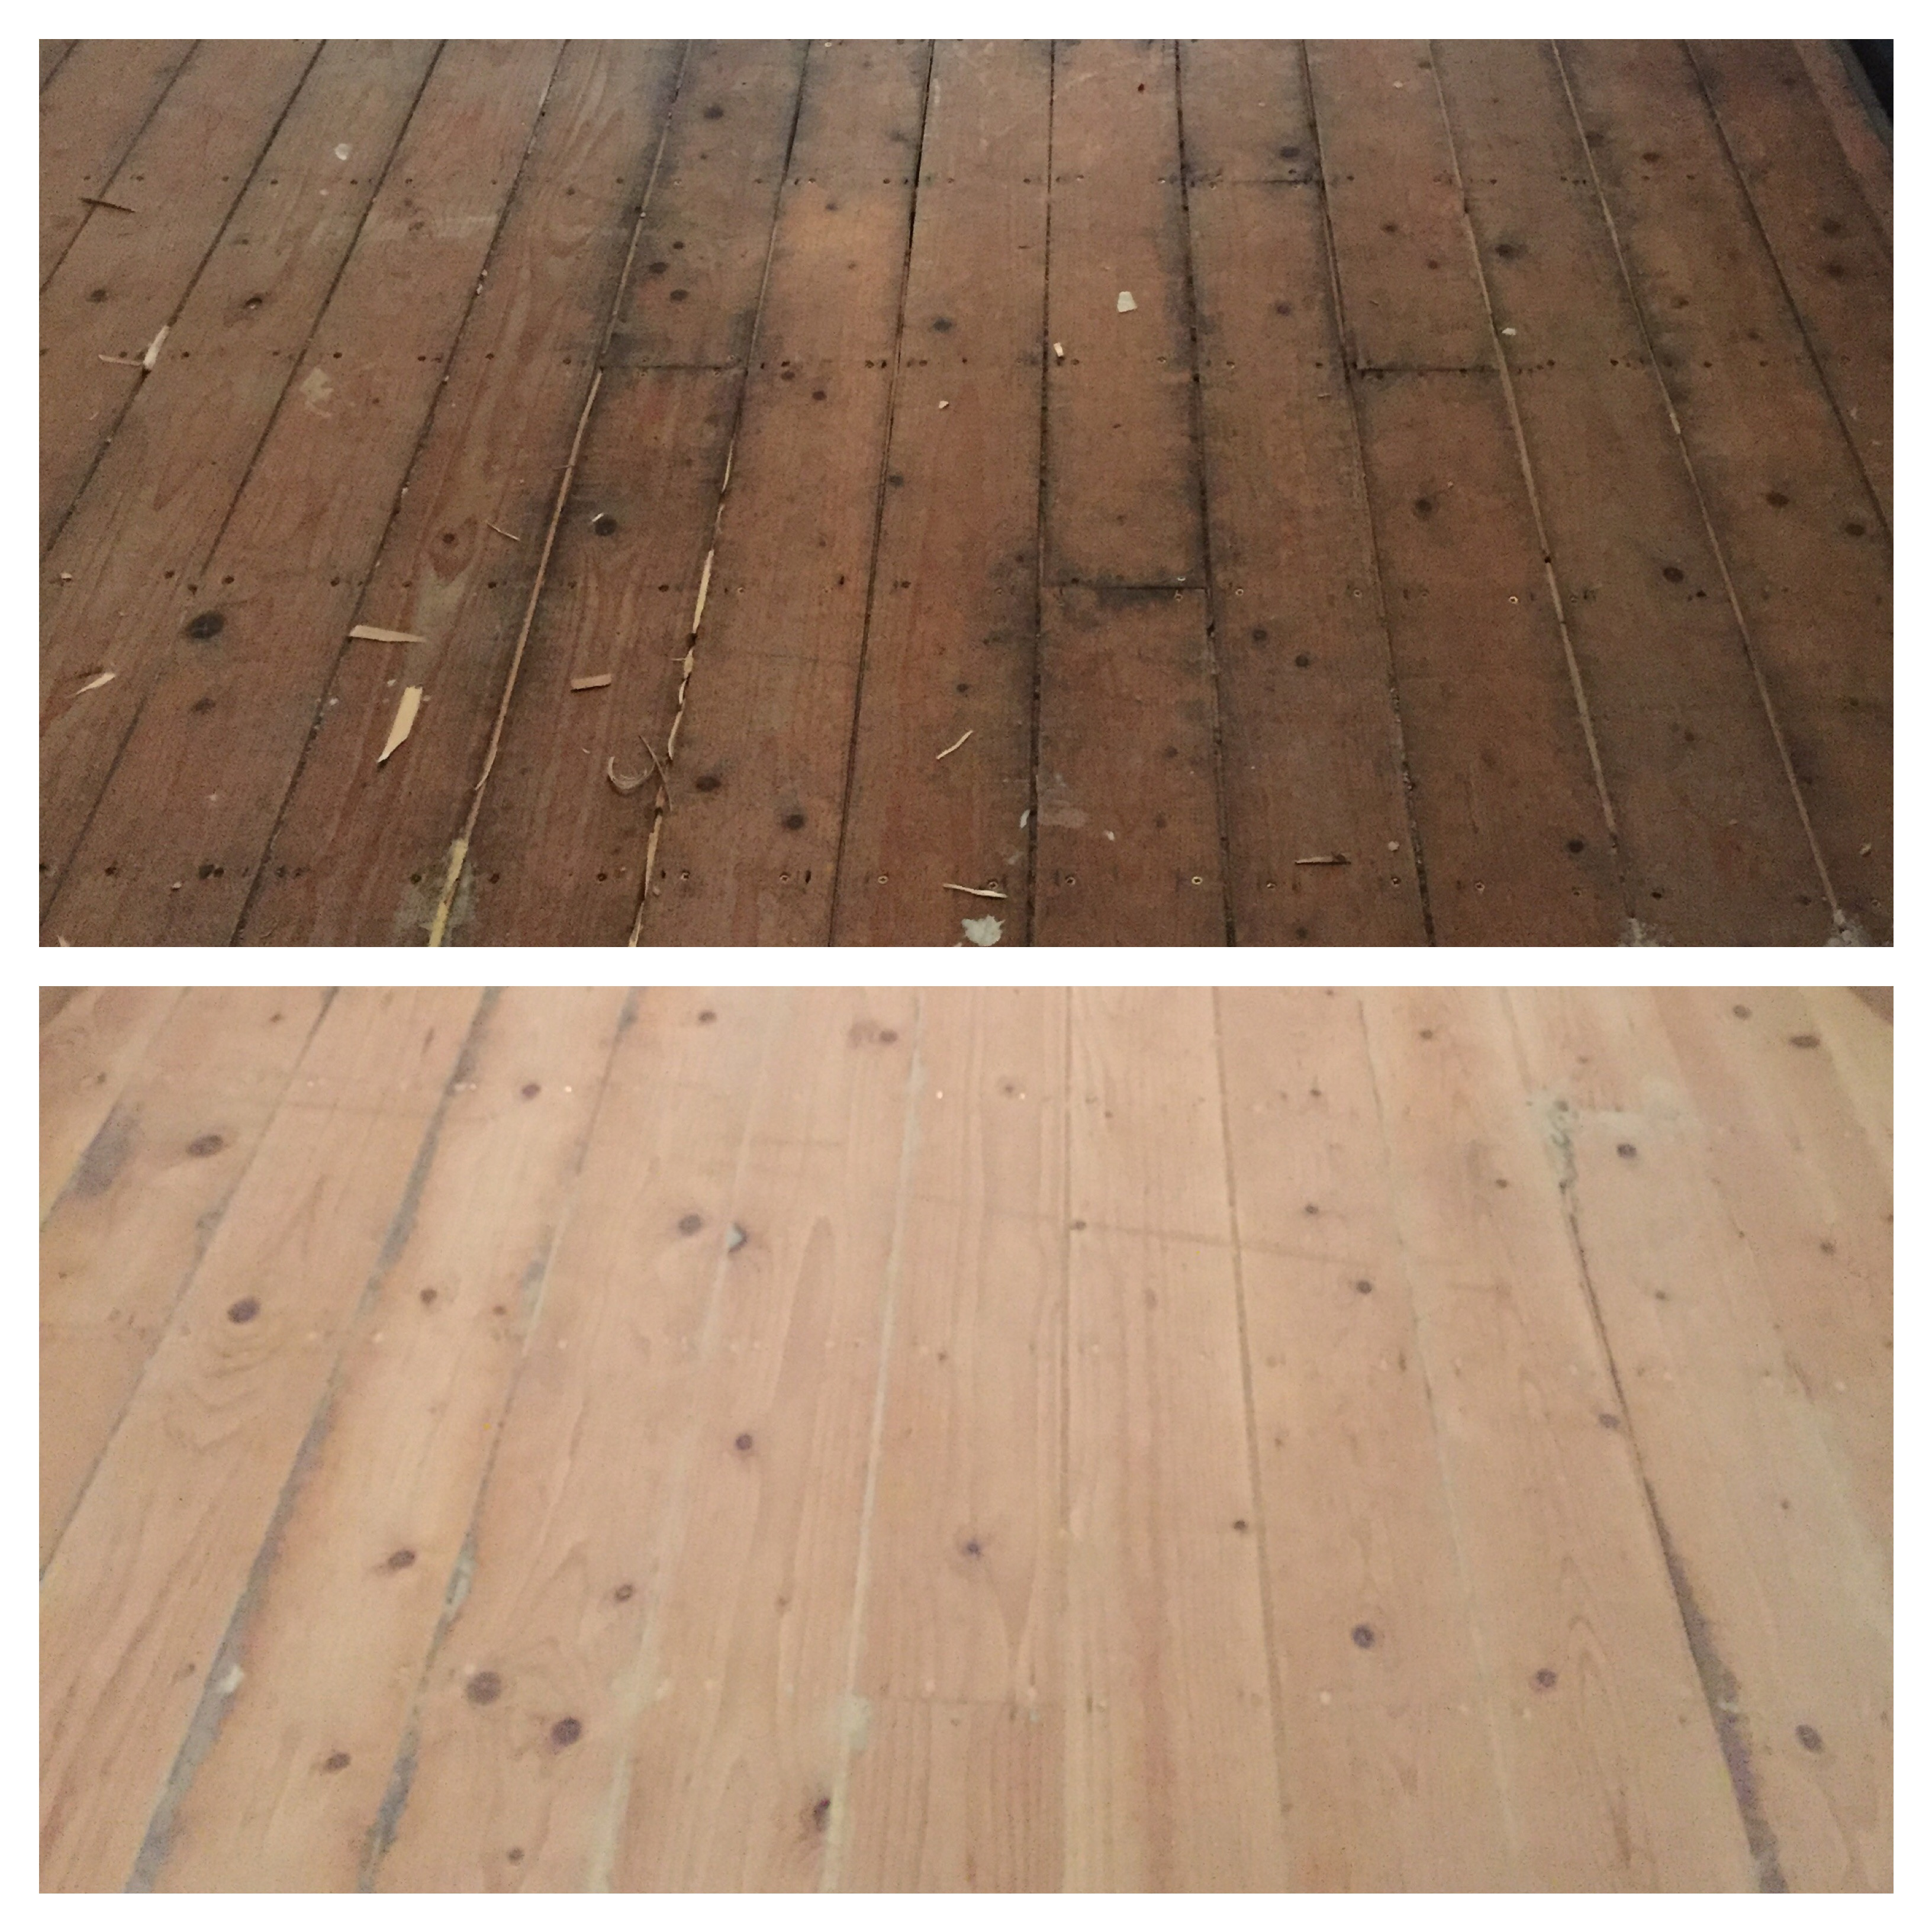 Before and after - the original floorboards versus the sanded floorboards